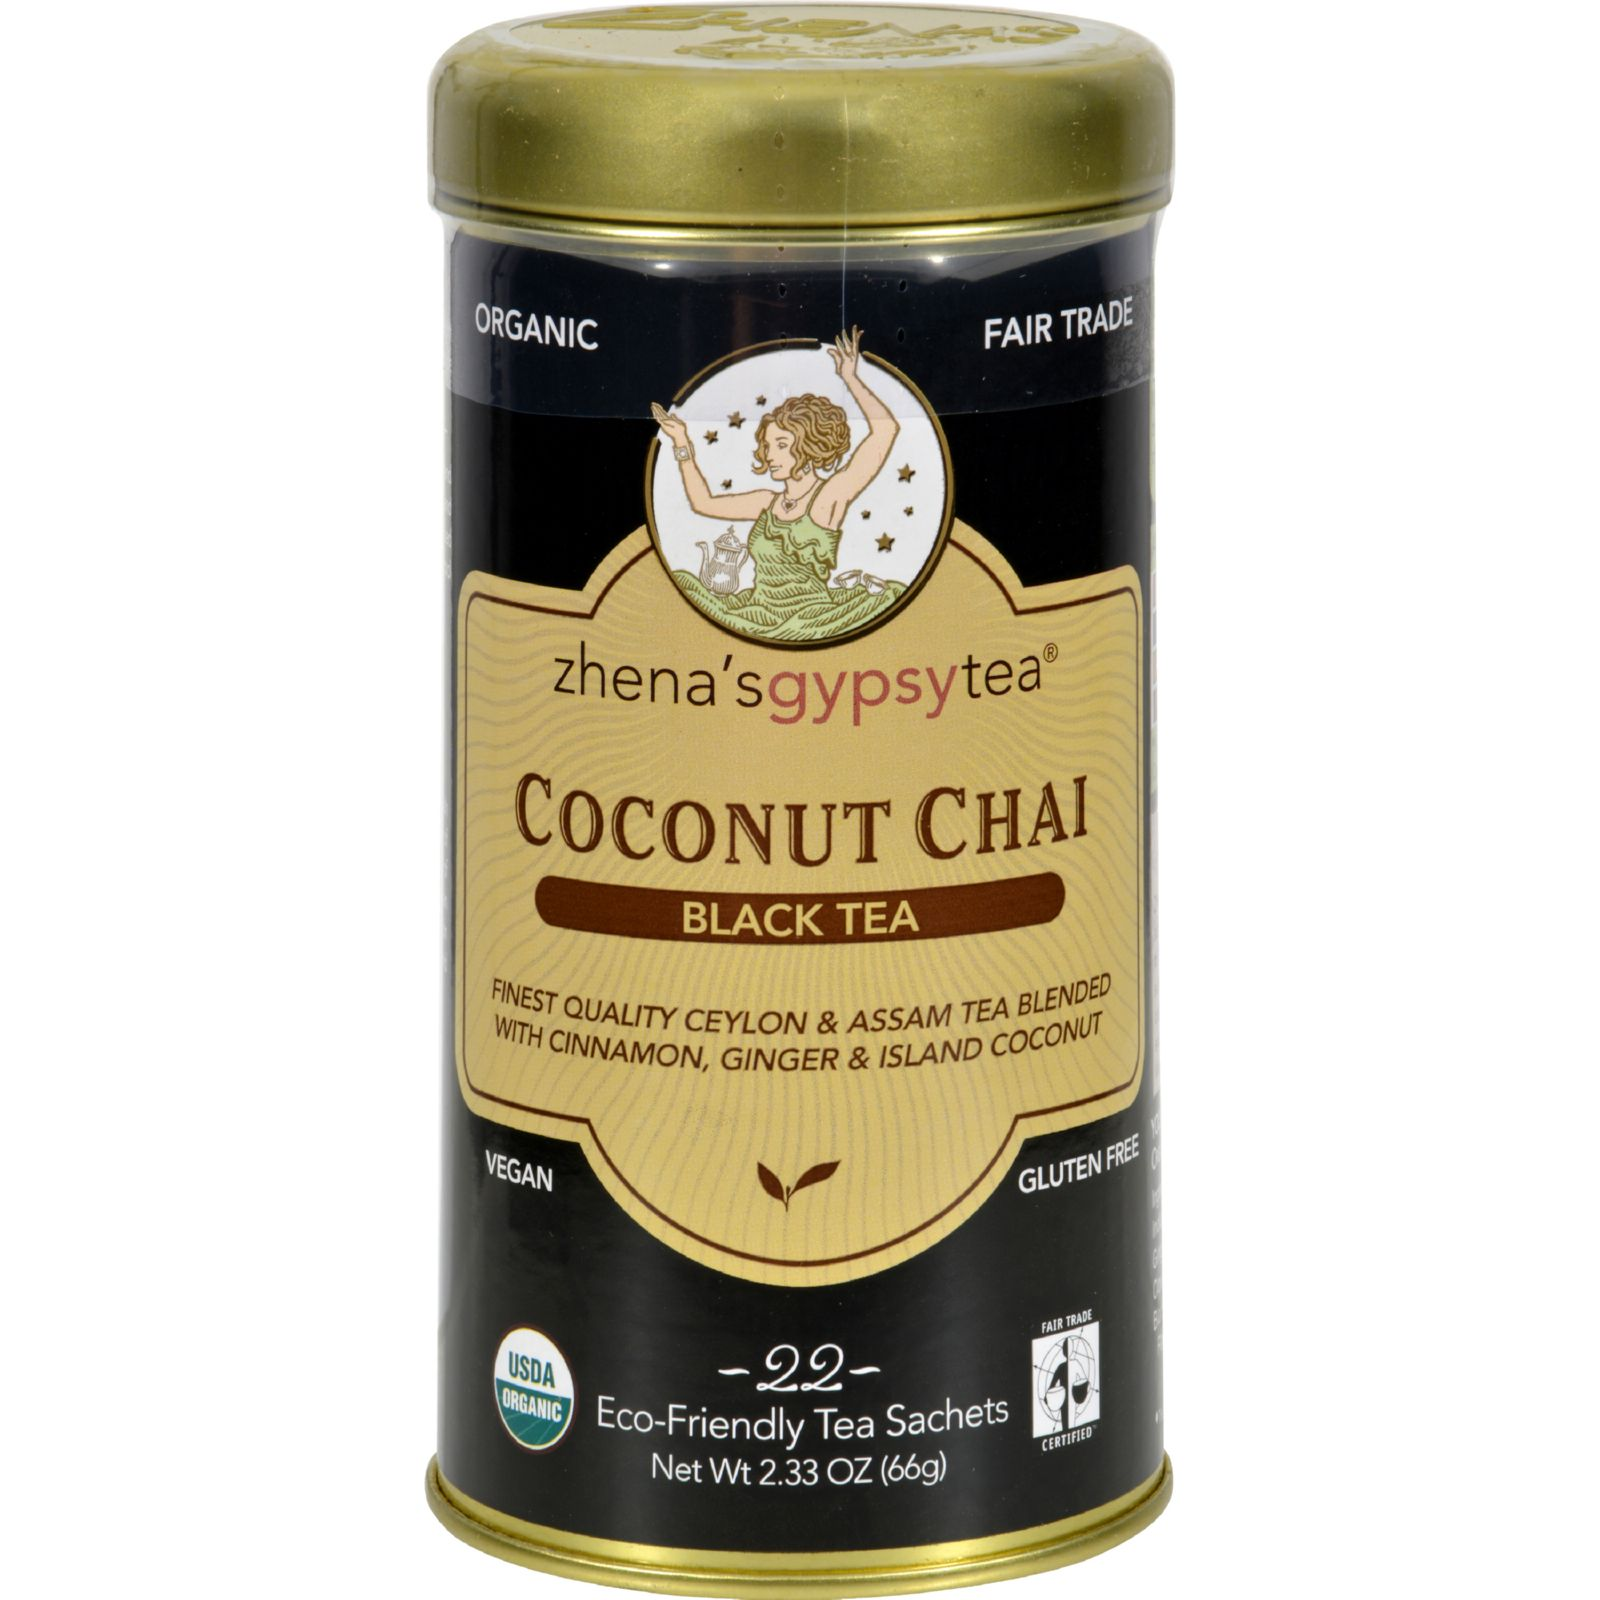 Zhena's Gypsy Tea Coconut Chai Black Tea - (Case of 6) - 22 Bags